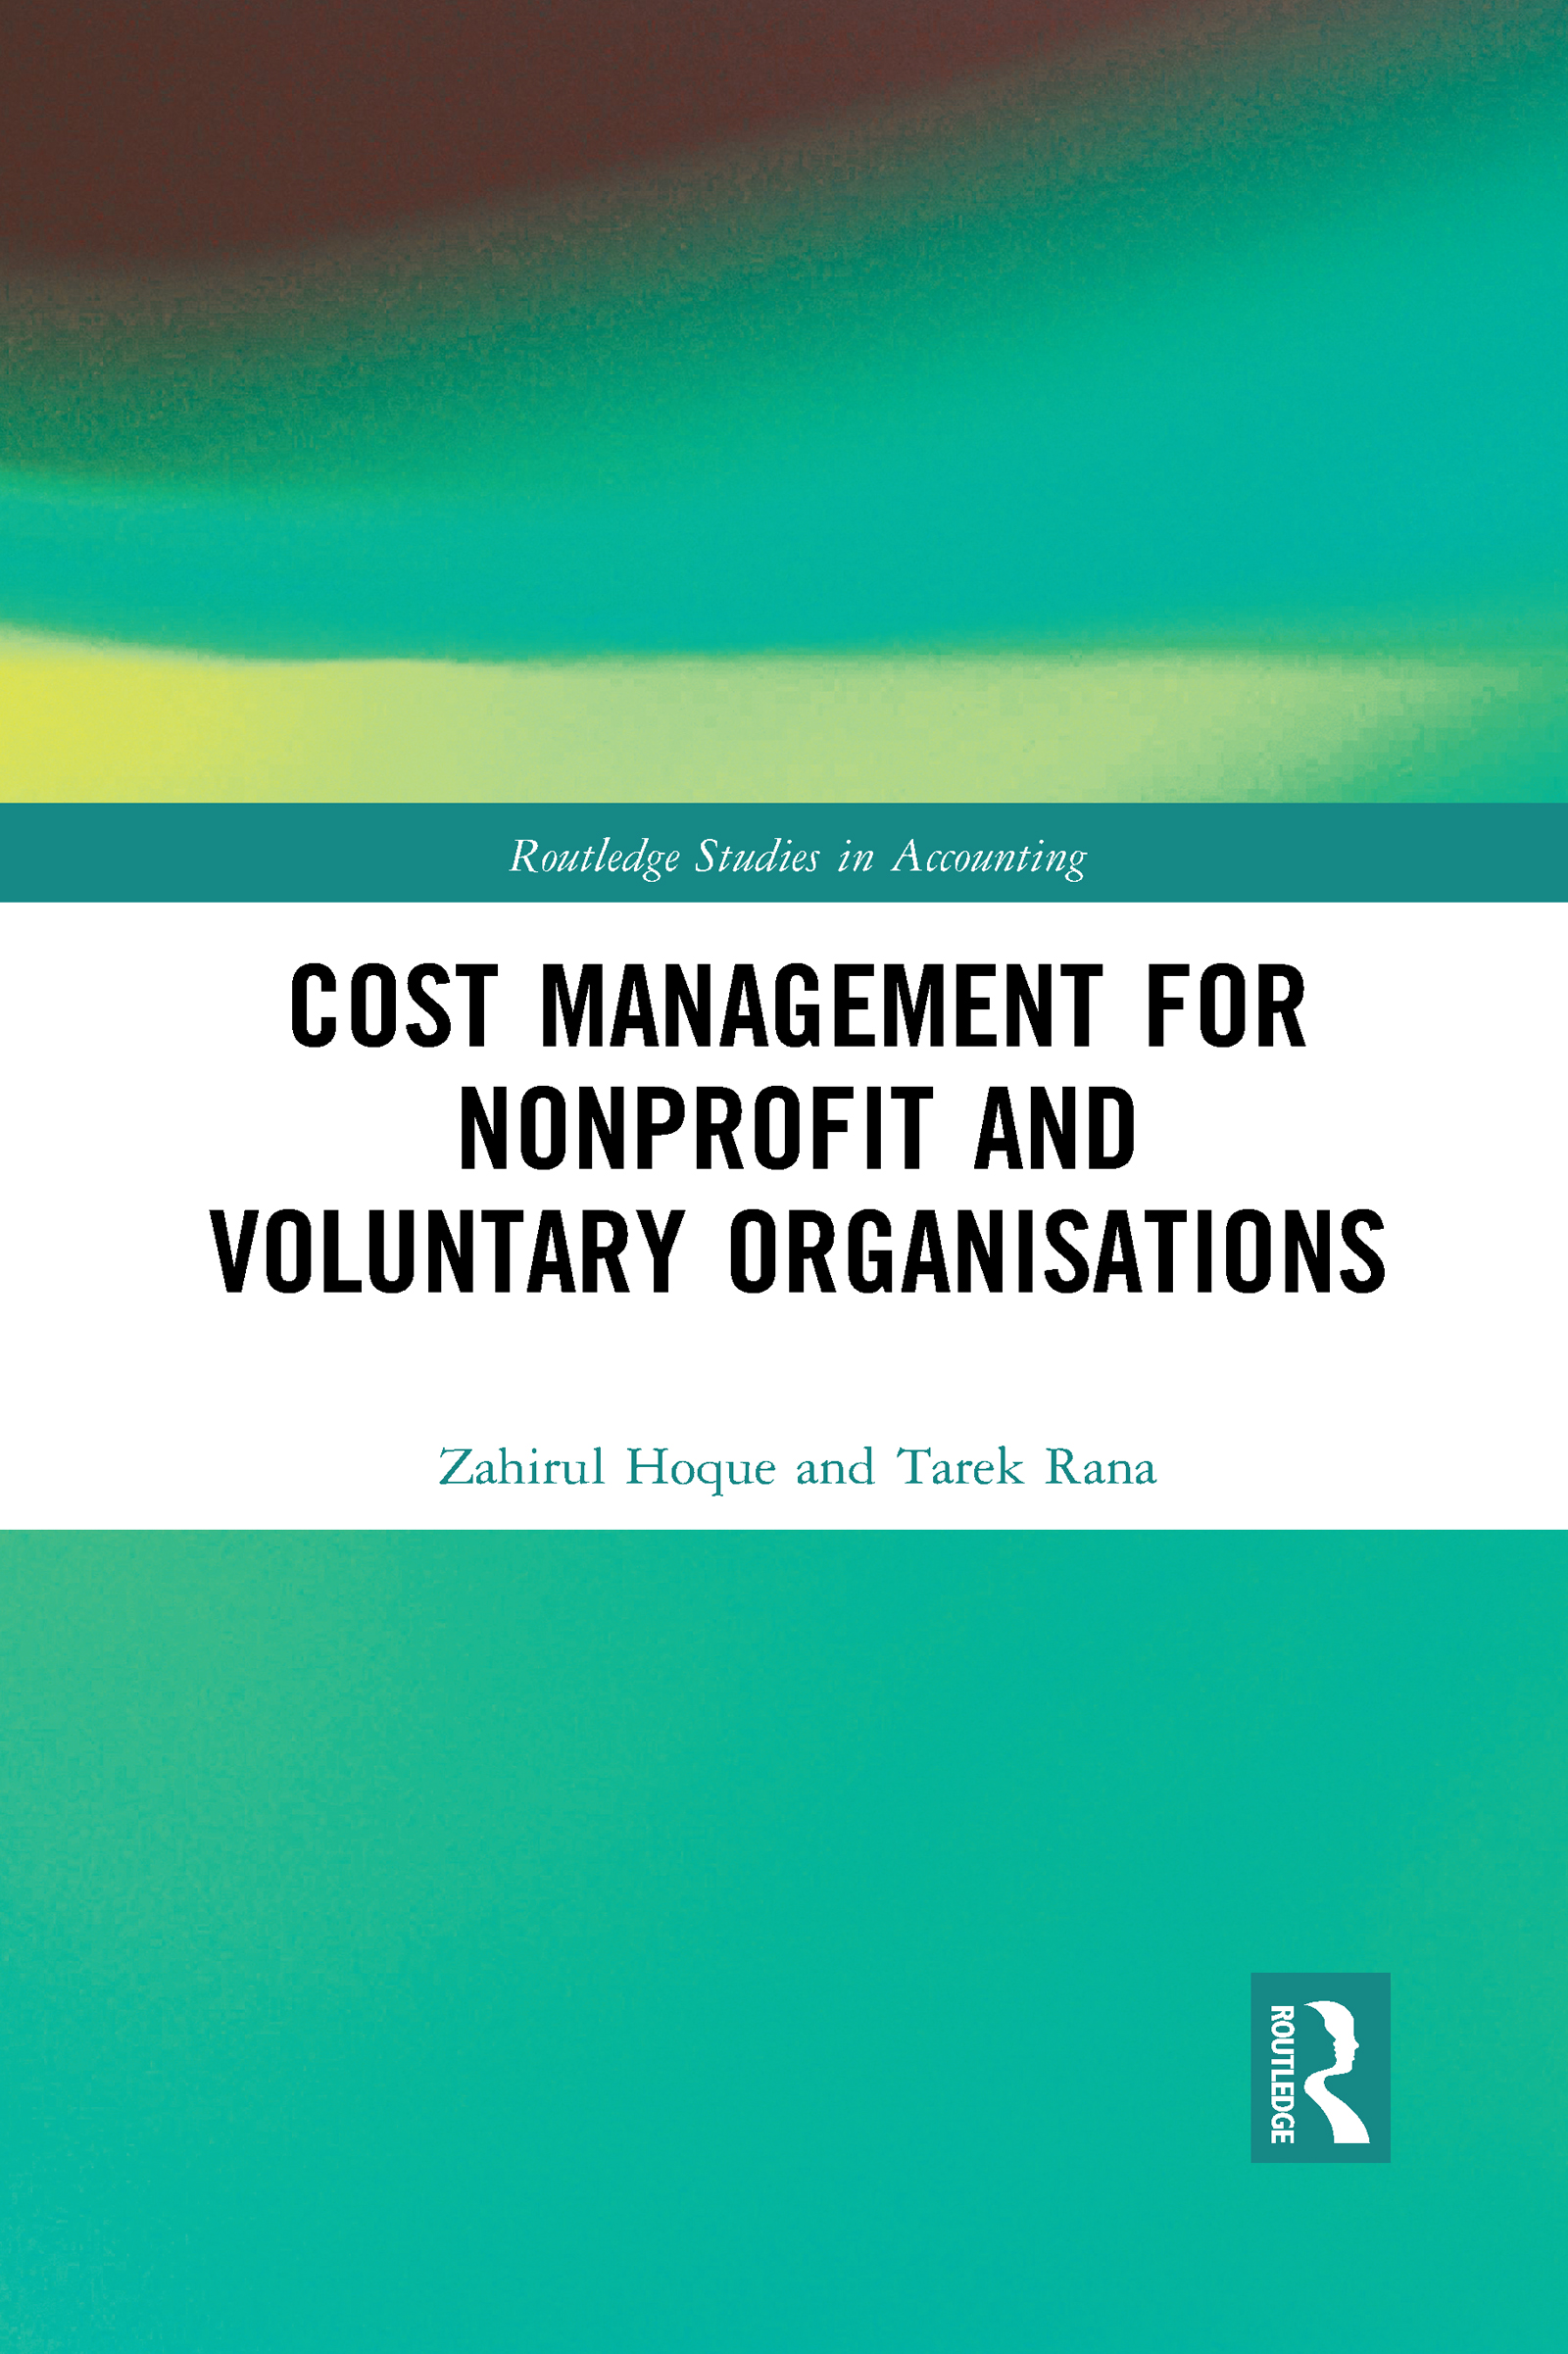 Cost Management for Nonprofit and Voluntary Organisations